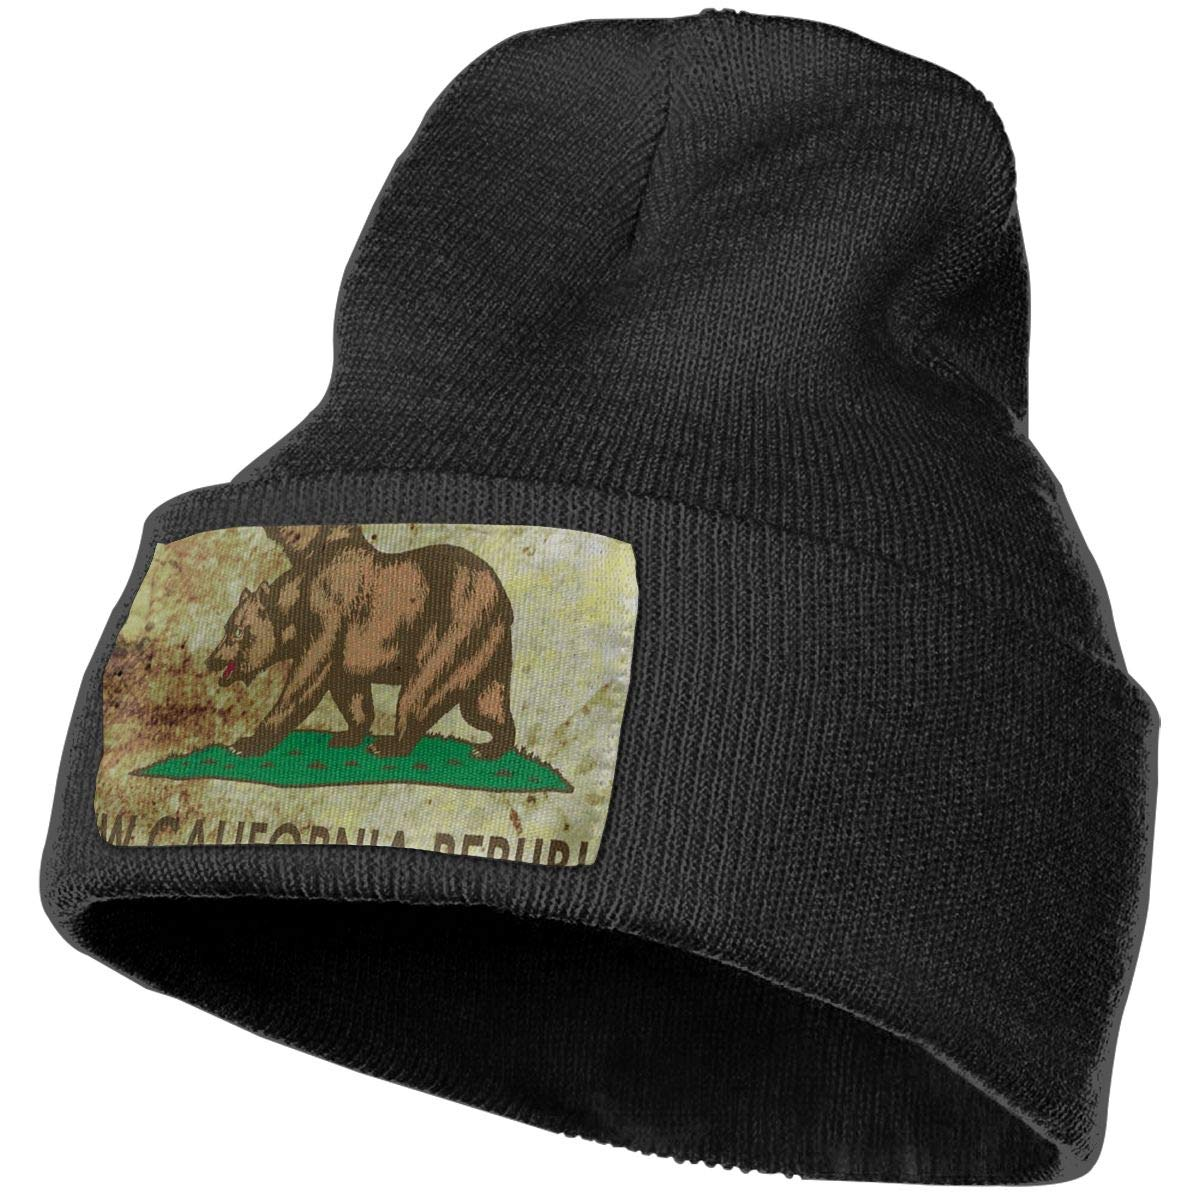 Horizon-t California Bear Unisex 100/% Acrylic Knitting Hat Cap Fashion Beanie Hat